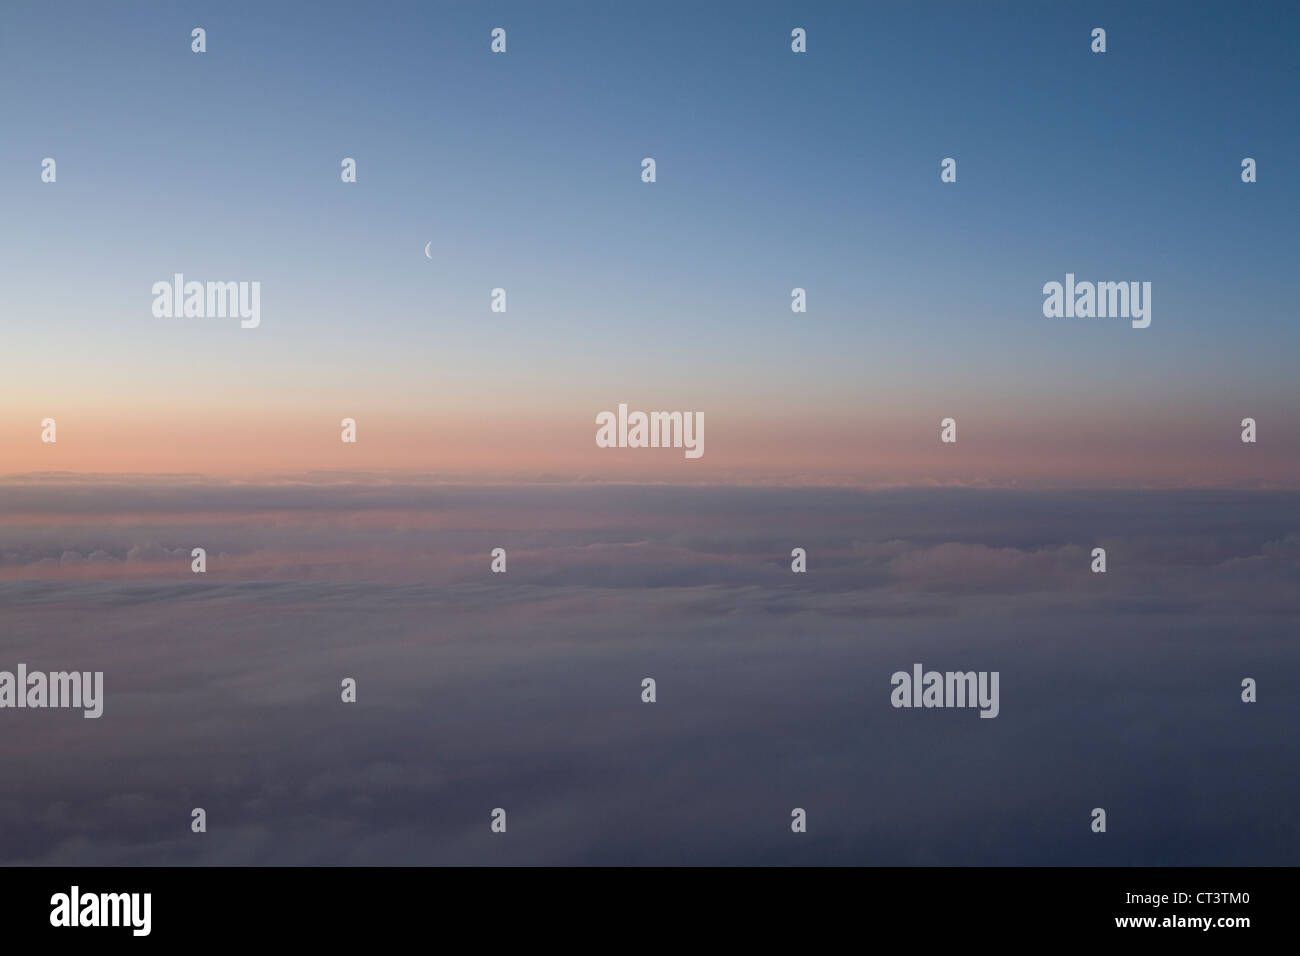 Aerial skyscape at sunset - Stock Image